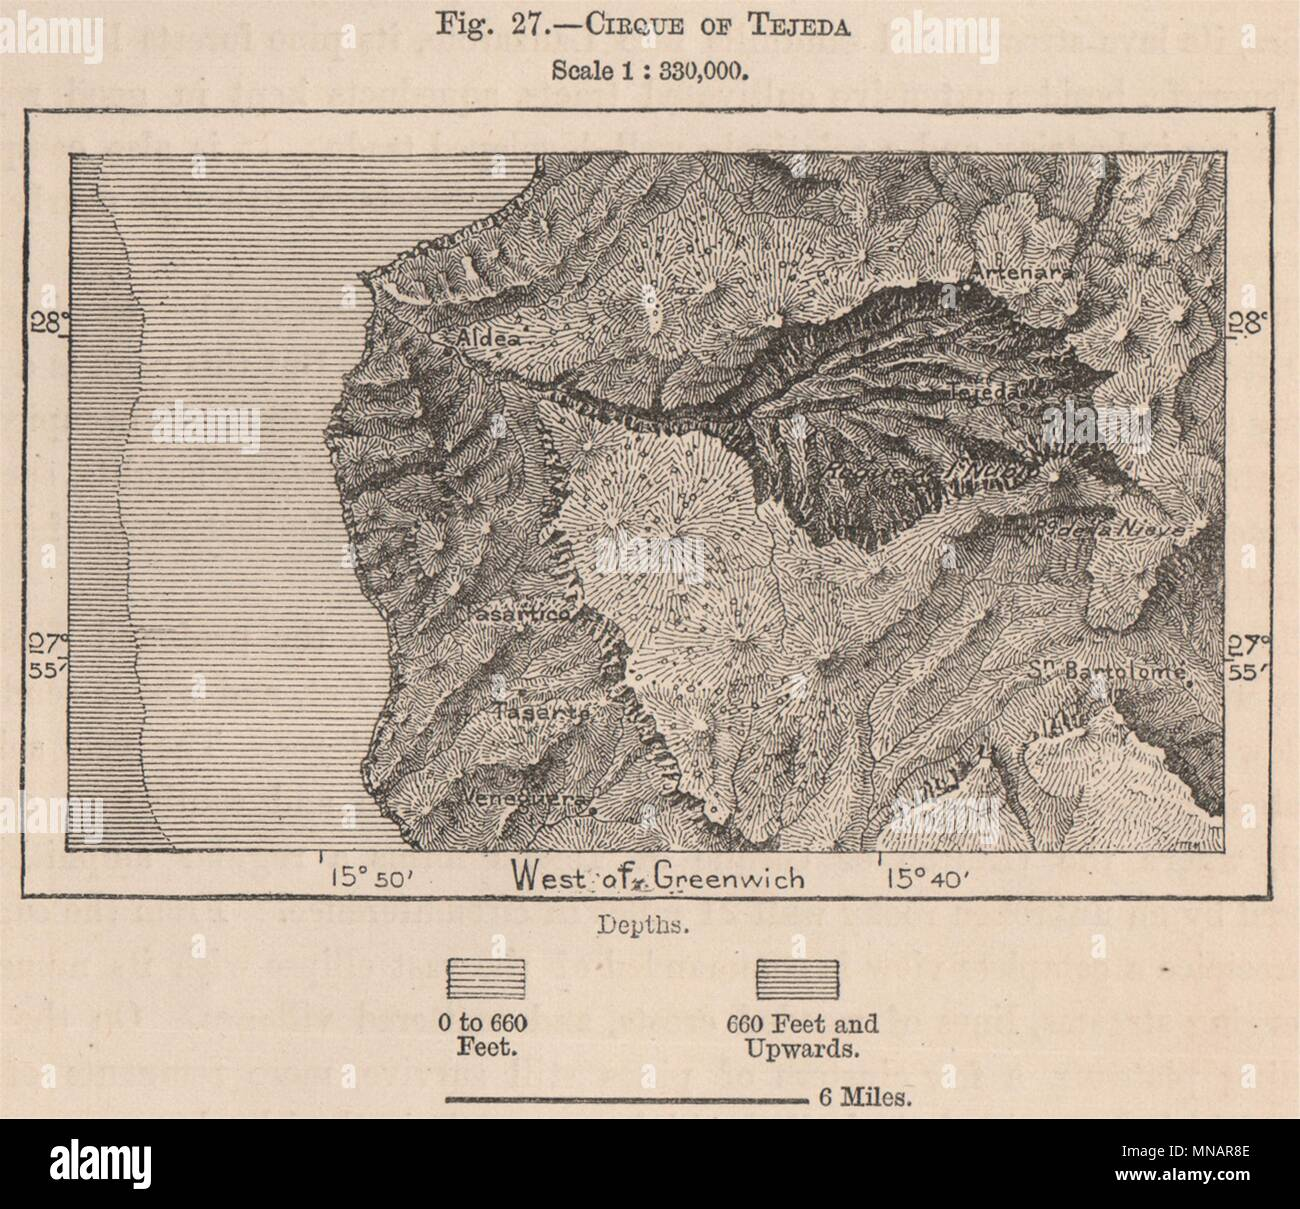 Map Of Spain Gran Canaria.Cirque Of Tejeda Gran Canaria Spain Canary Islands 1885 Old